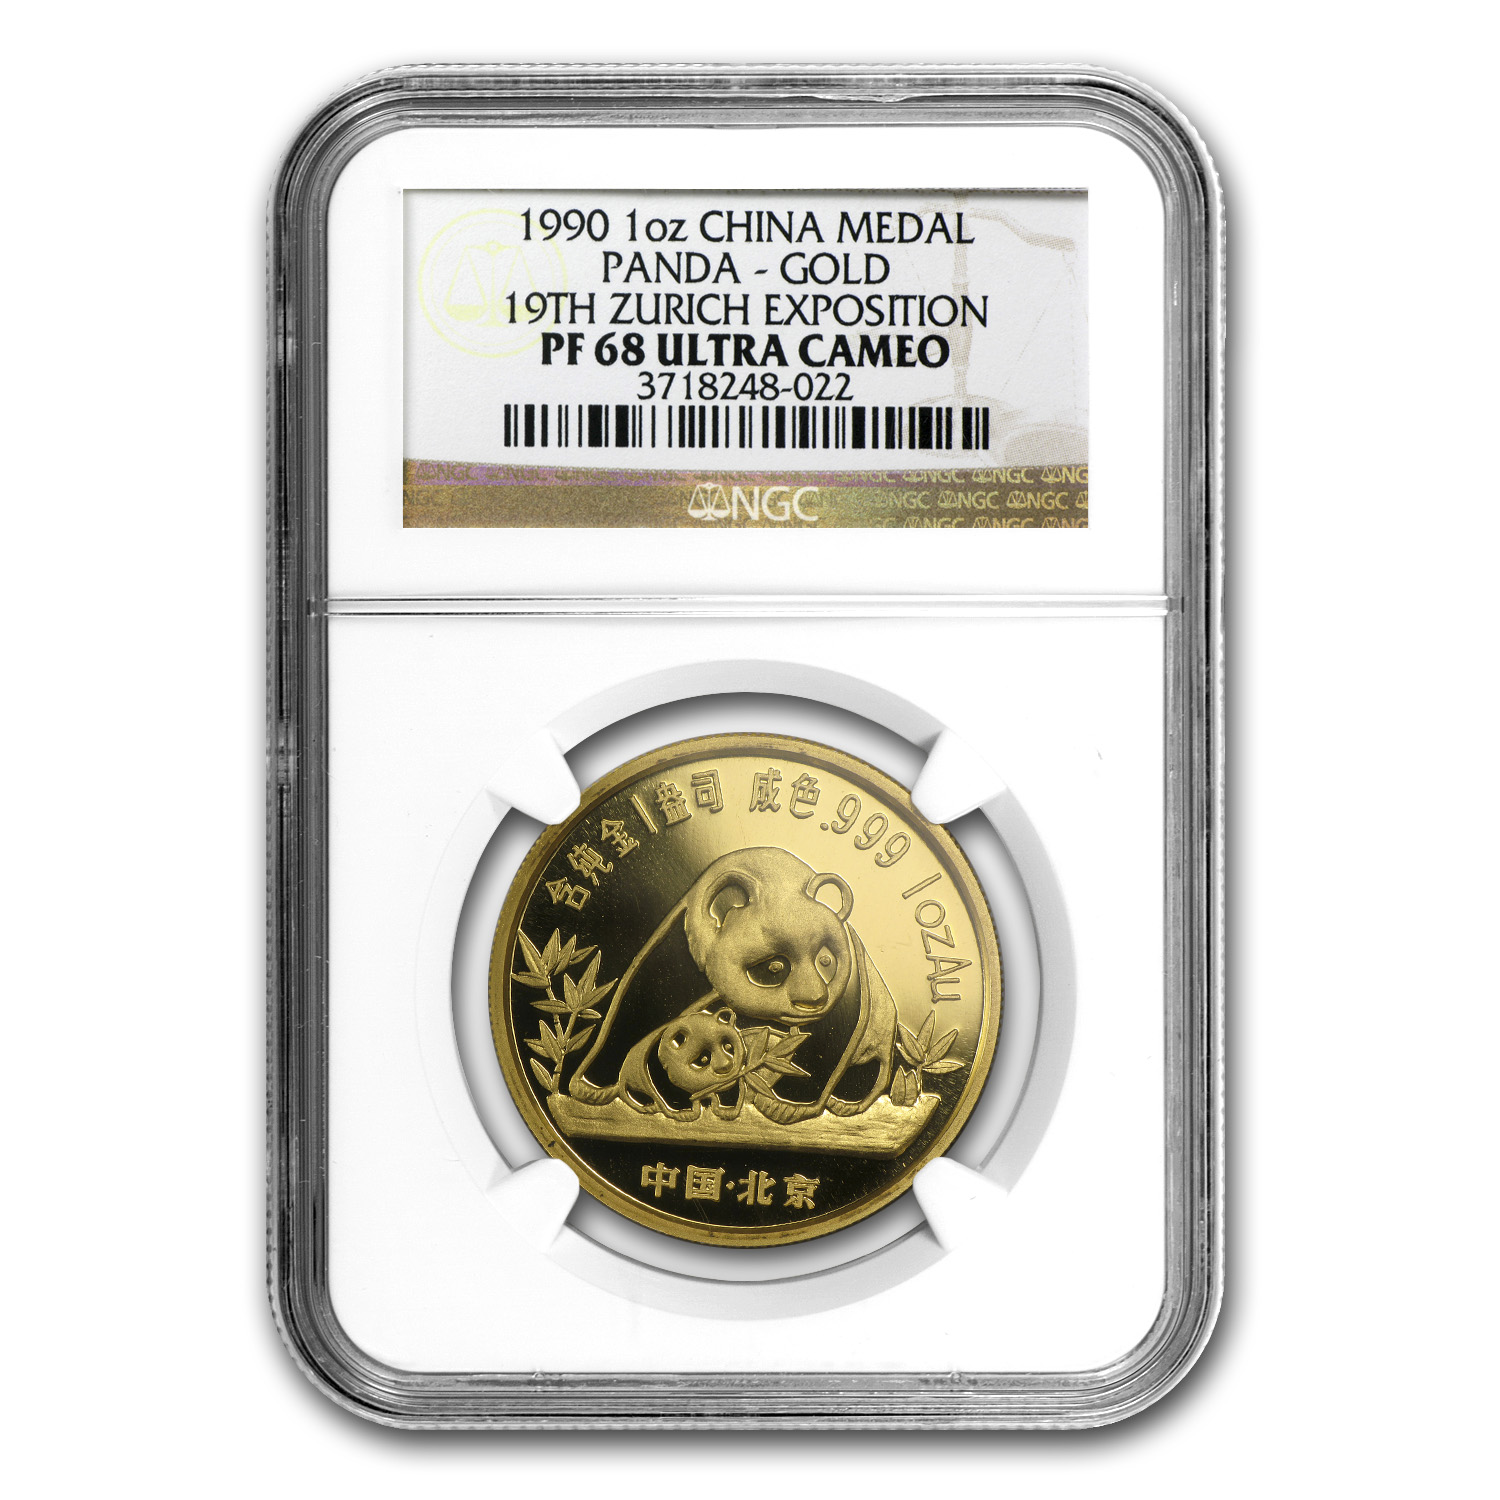 1990 1 oz Gold Chinese Panda - 19th Zurich Expo Medal PF-68 NGC